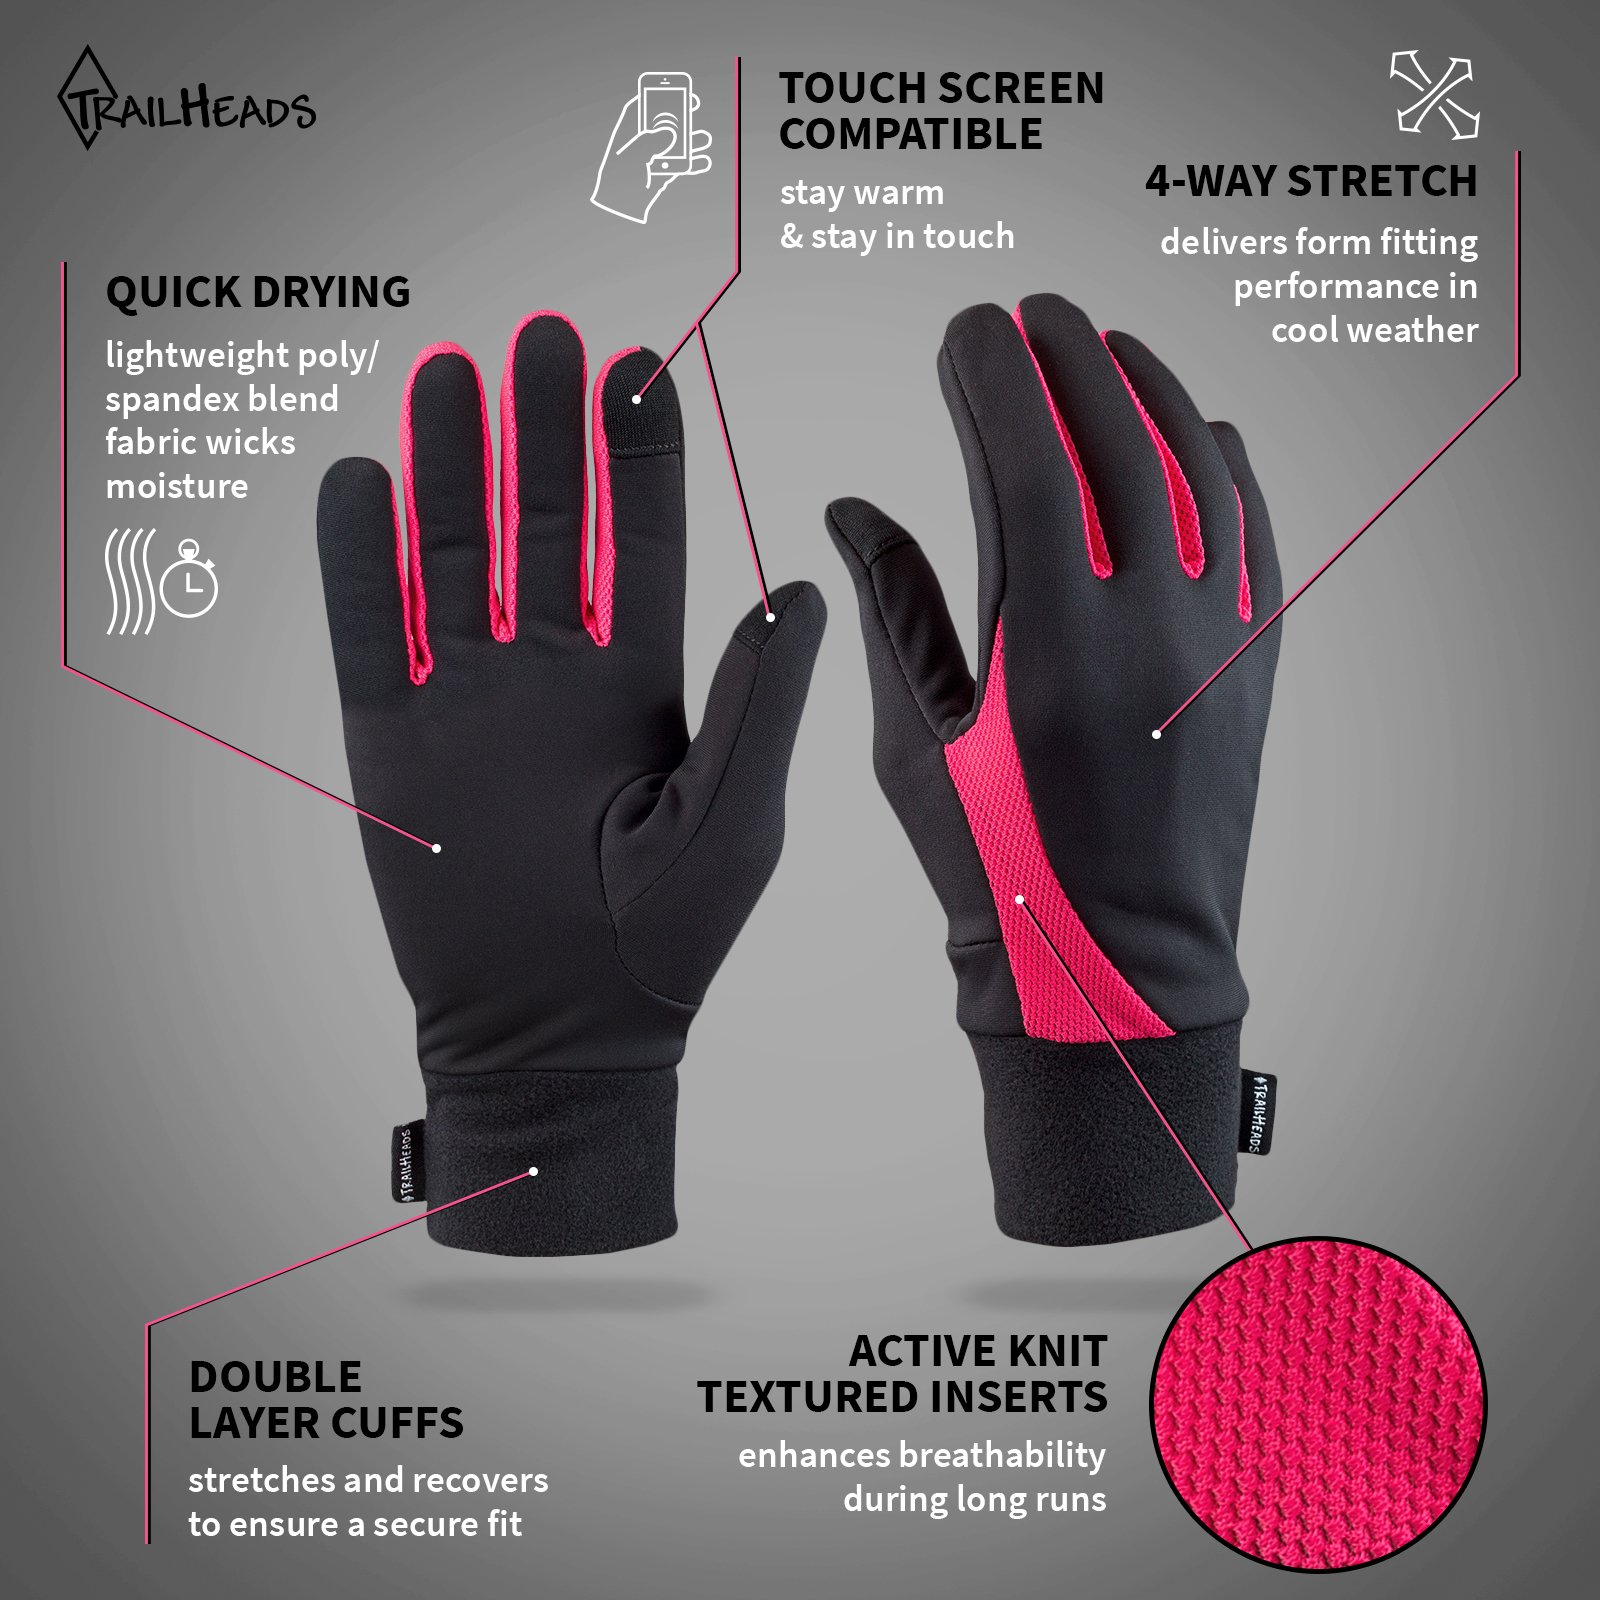 TrailHeads Running Gloves   Lightweight Gloves with Touchscreen Fingers -Black/Bright Coral (Large) by TrailHeads (Image #2)